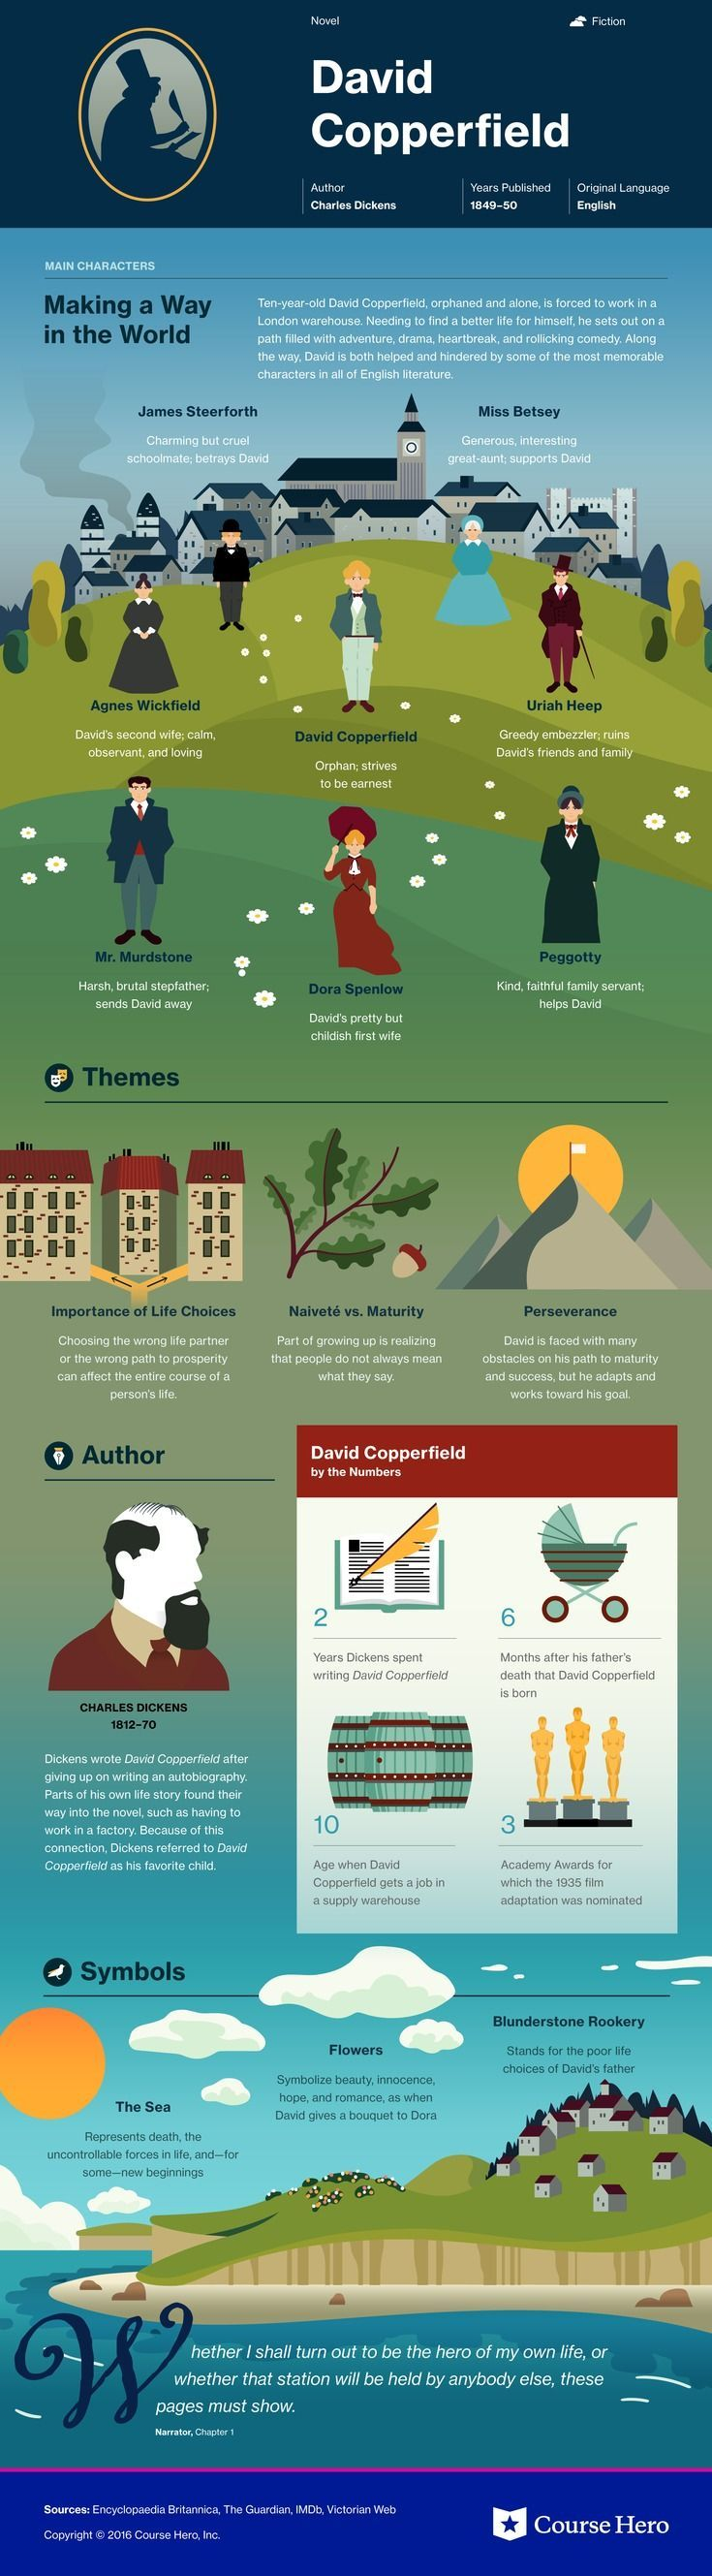 best images about literature infographics the learn about the different symbols such as blunderstone rookery in david copperfield and how they contribute to the plot of the book